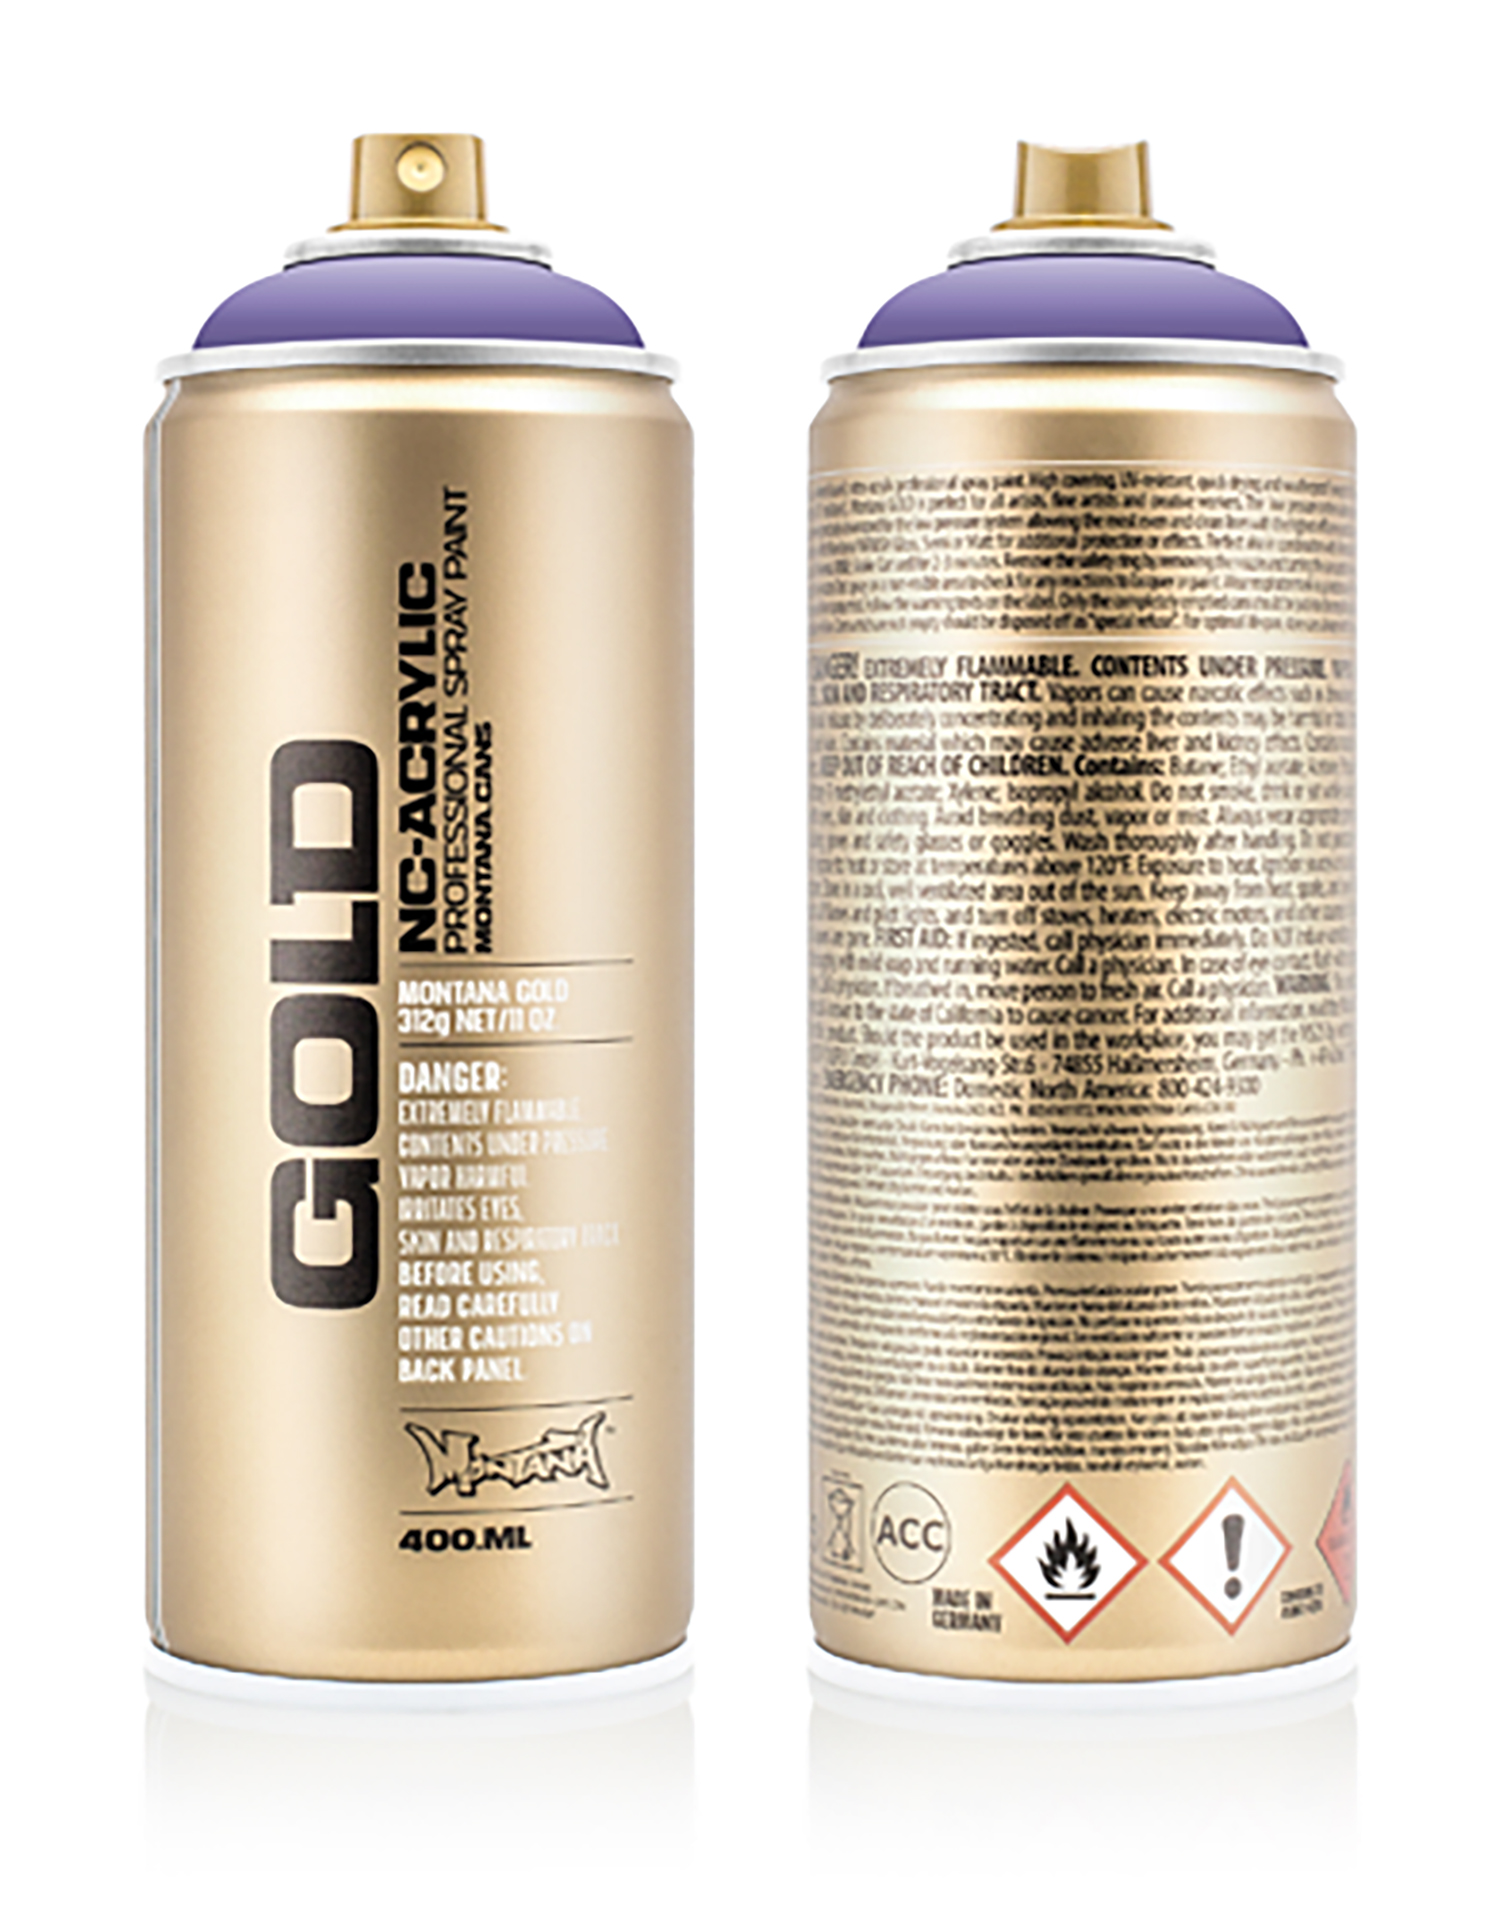 MONTANA-GOLD-SPRAY-400ML-G-4130